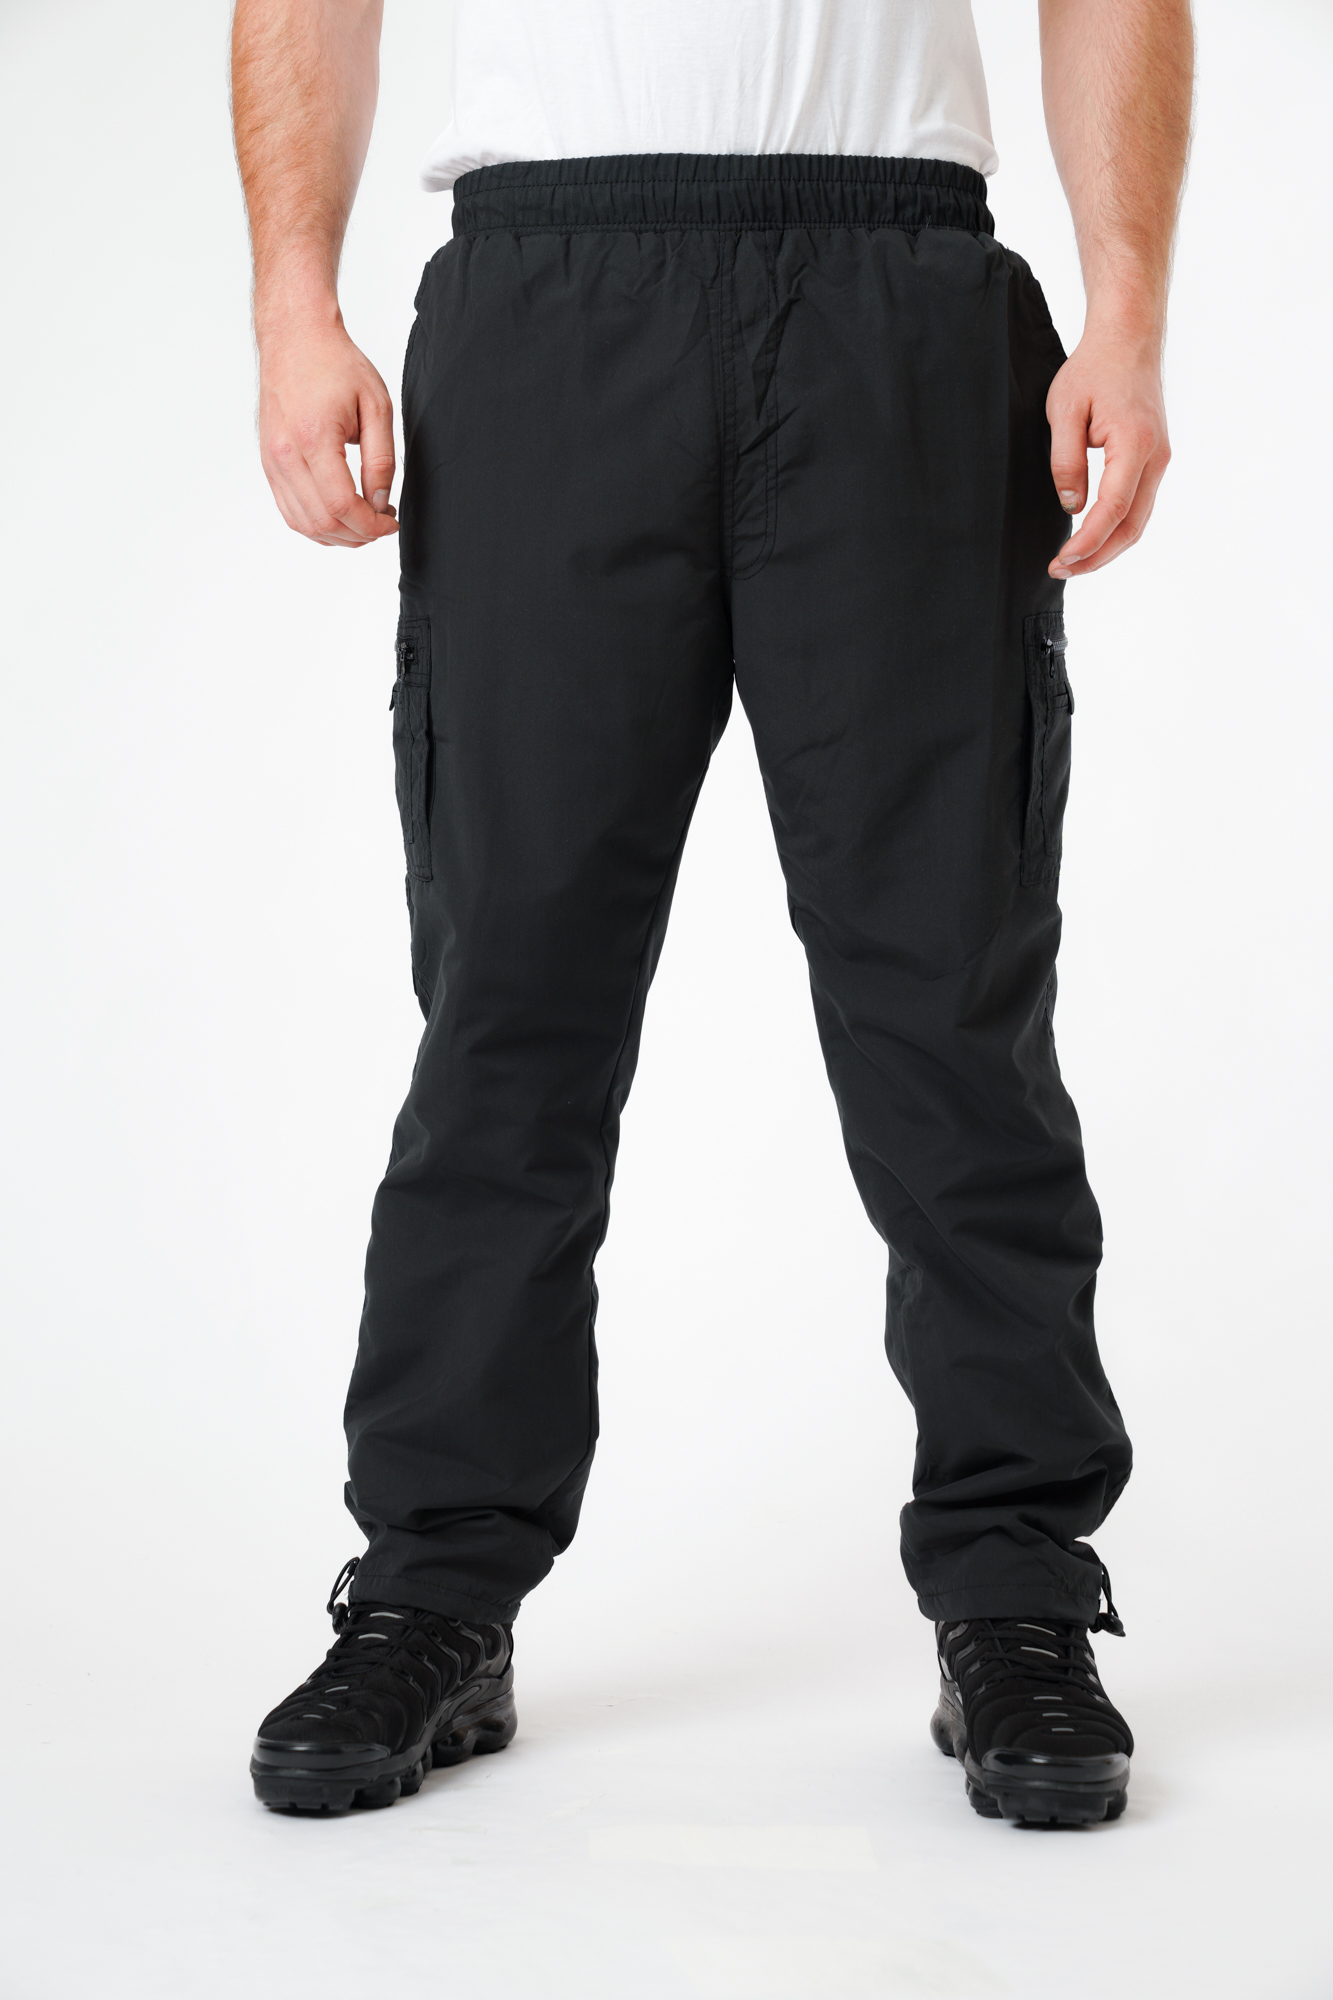 Inside Fleece Trouser